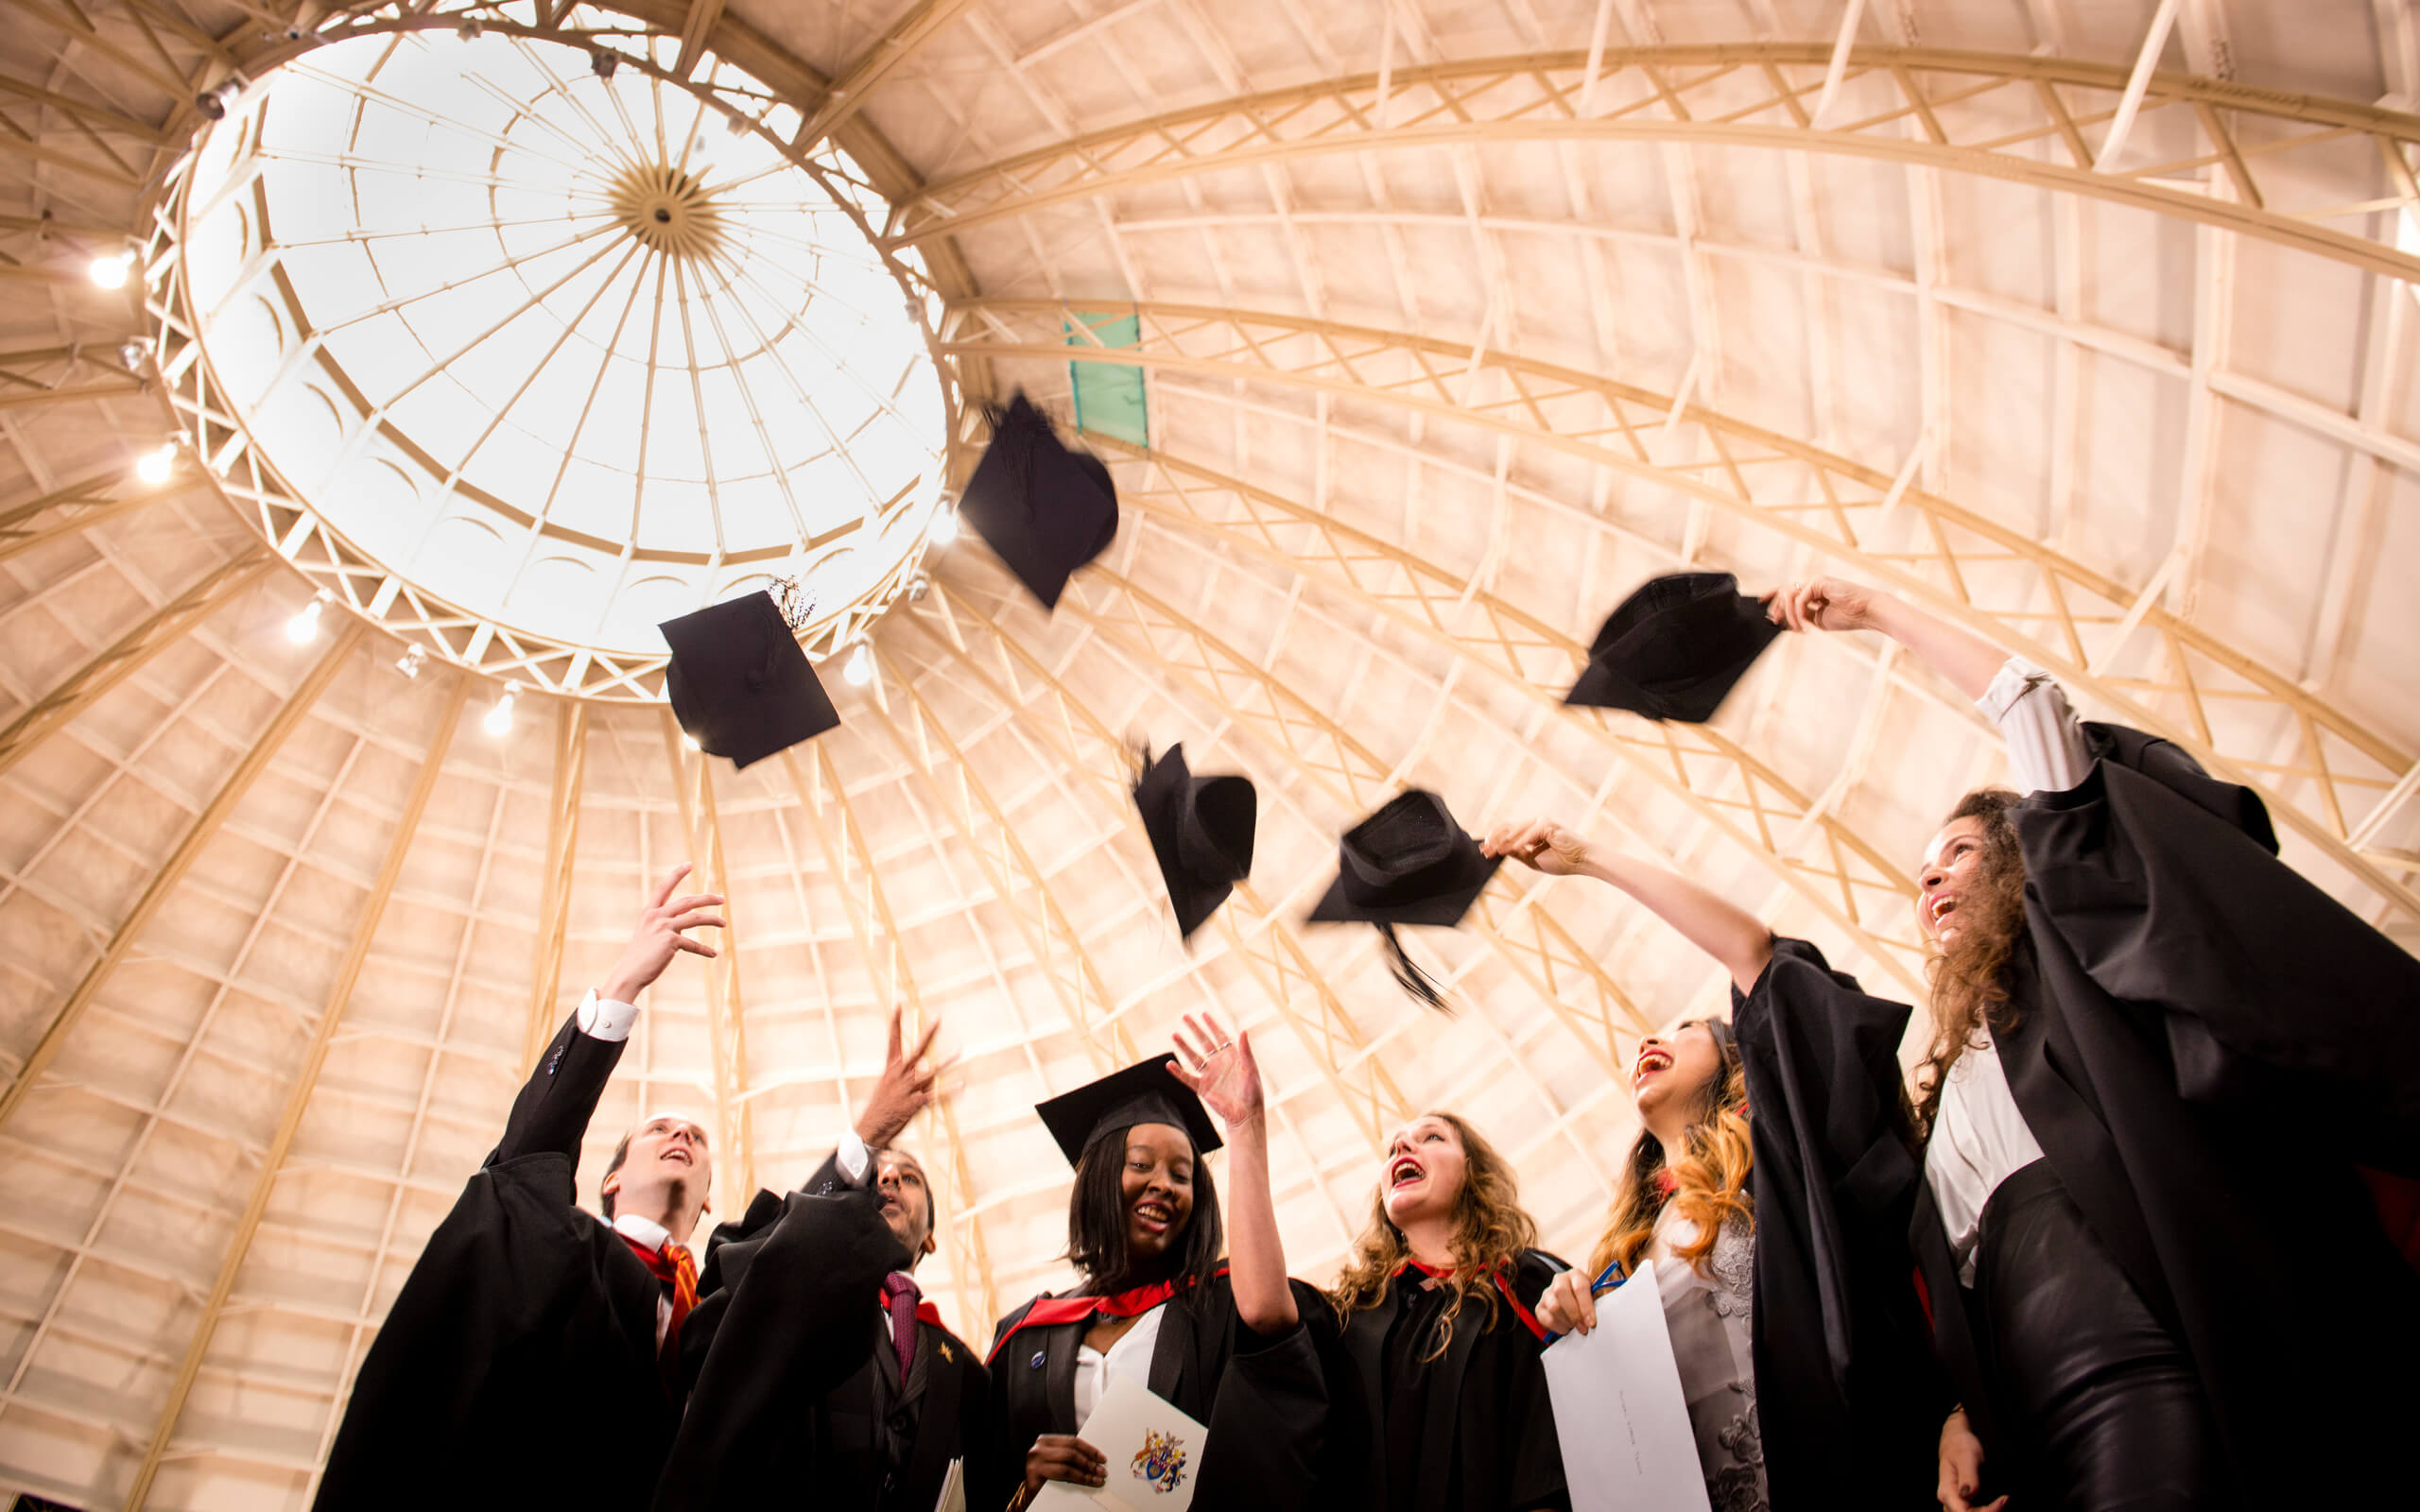 Student throwing graduation caps in the air at Buxton Awards Ceremony